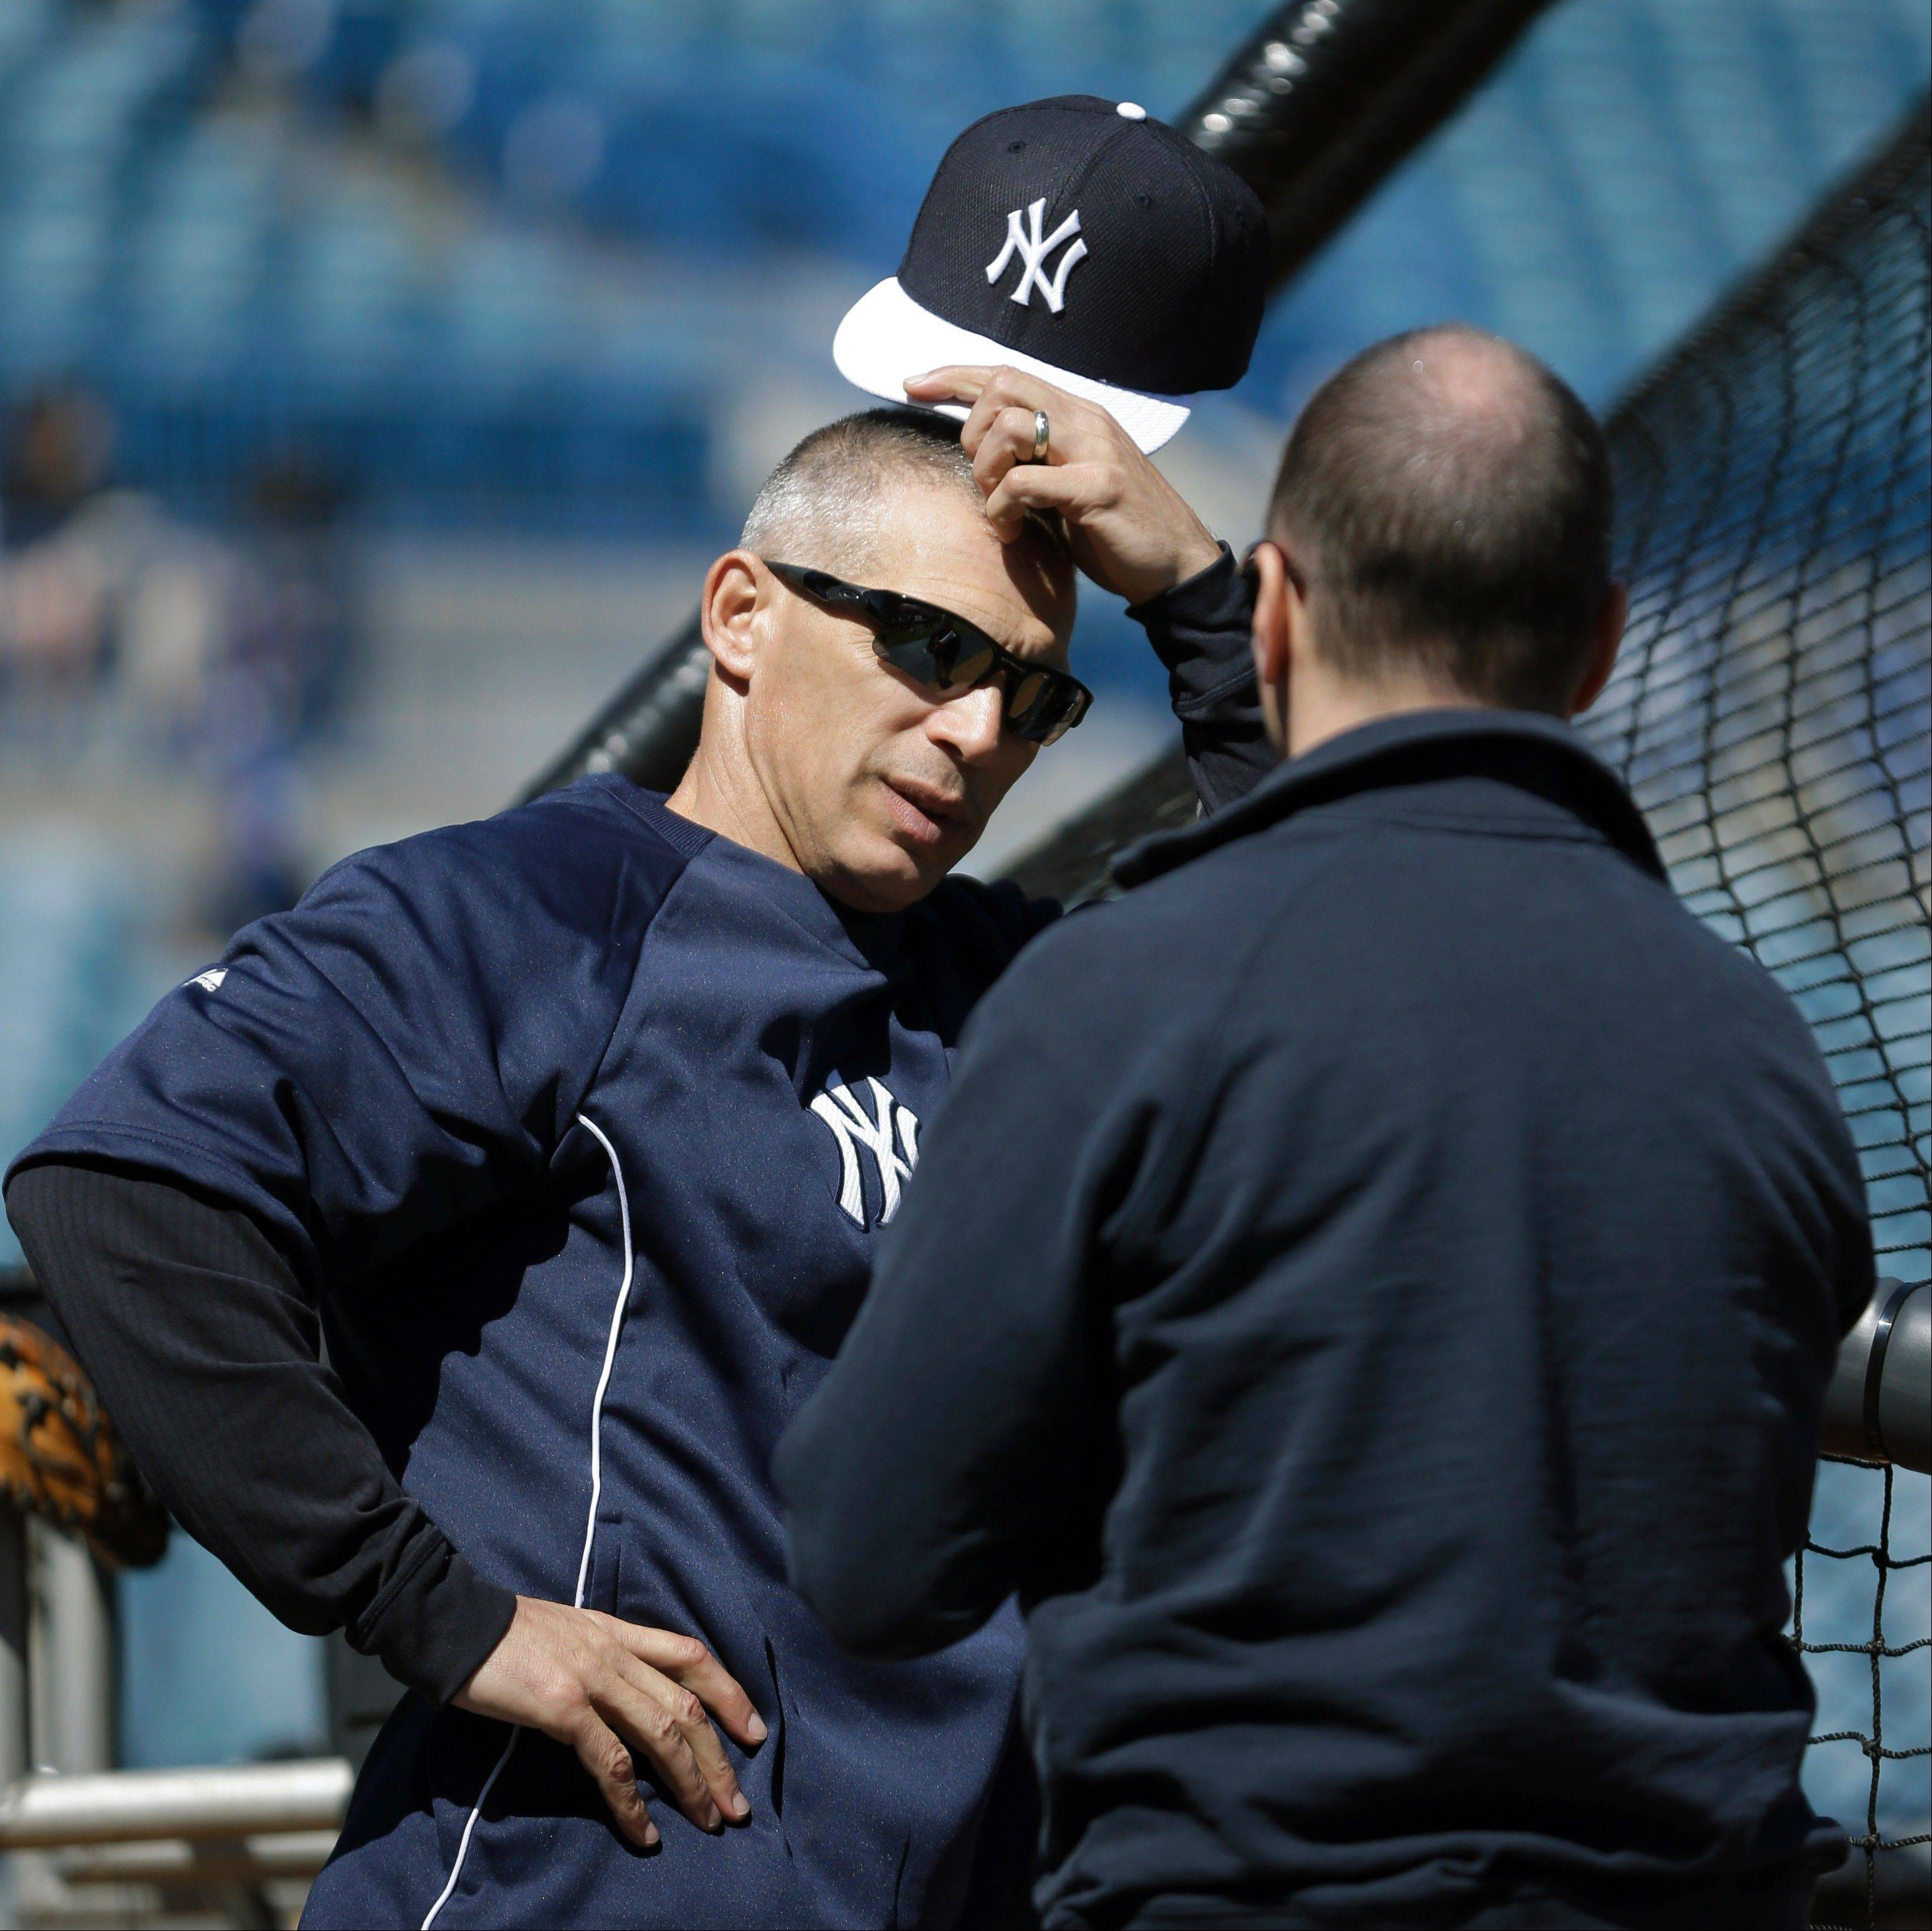 New York Yankees general manager Brian Cashman was able to convince Joe Girardi, left, to stay in New York and manage his baseball team. Girardi agreed to a four-year deal.